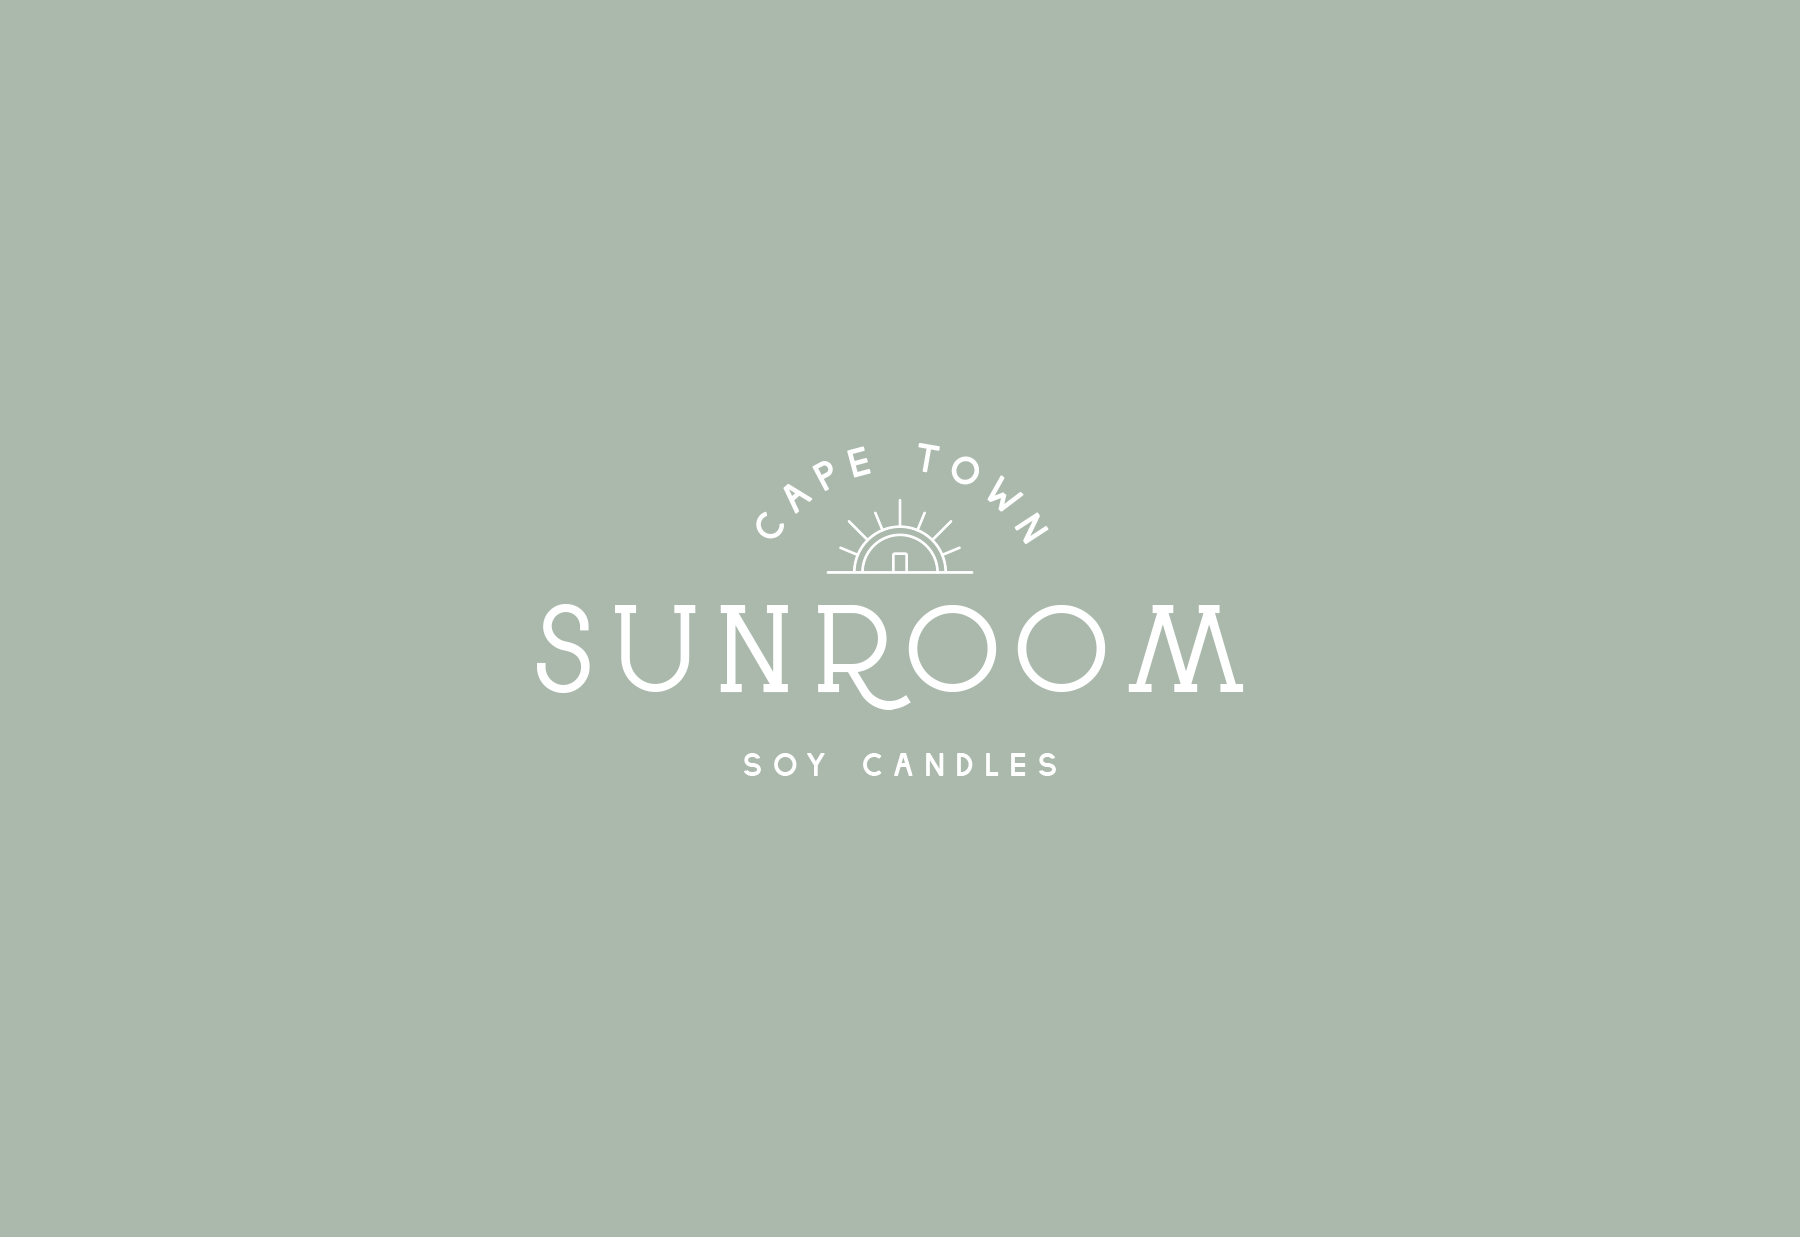 Pretty logo design for a Cape Town based soy candle company, Sunroom